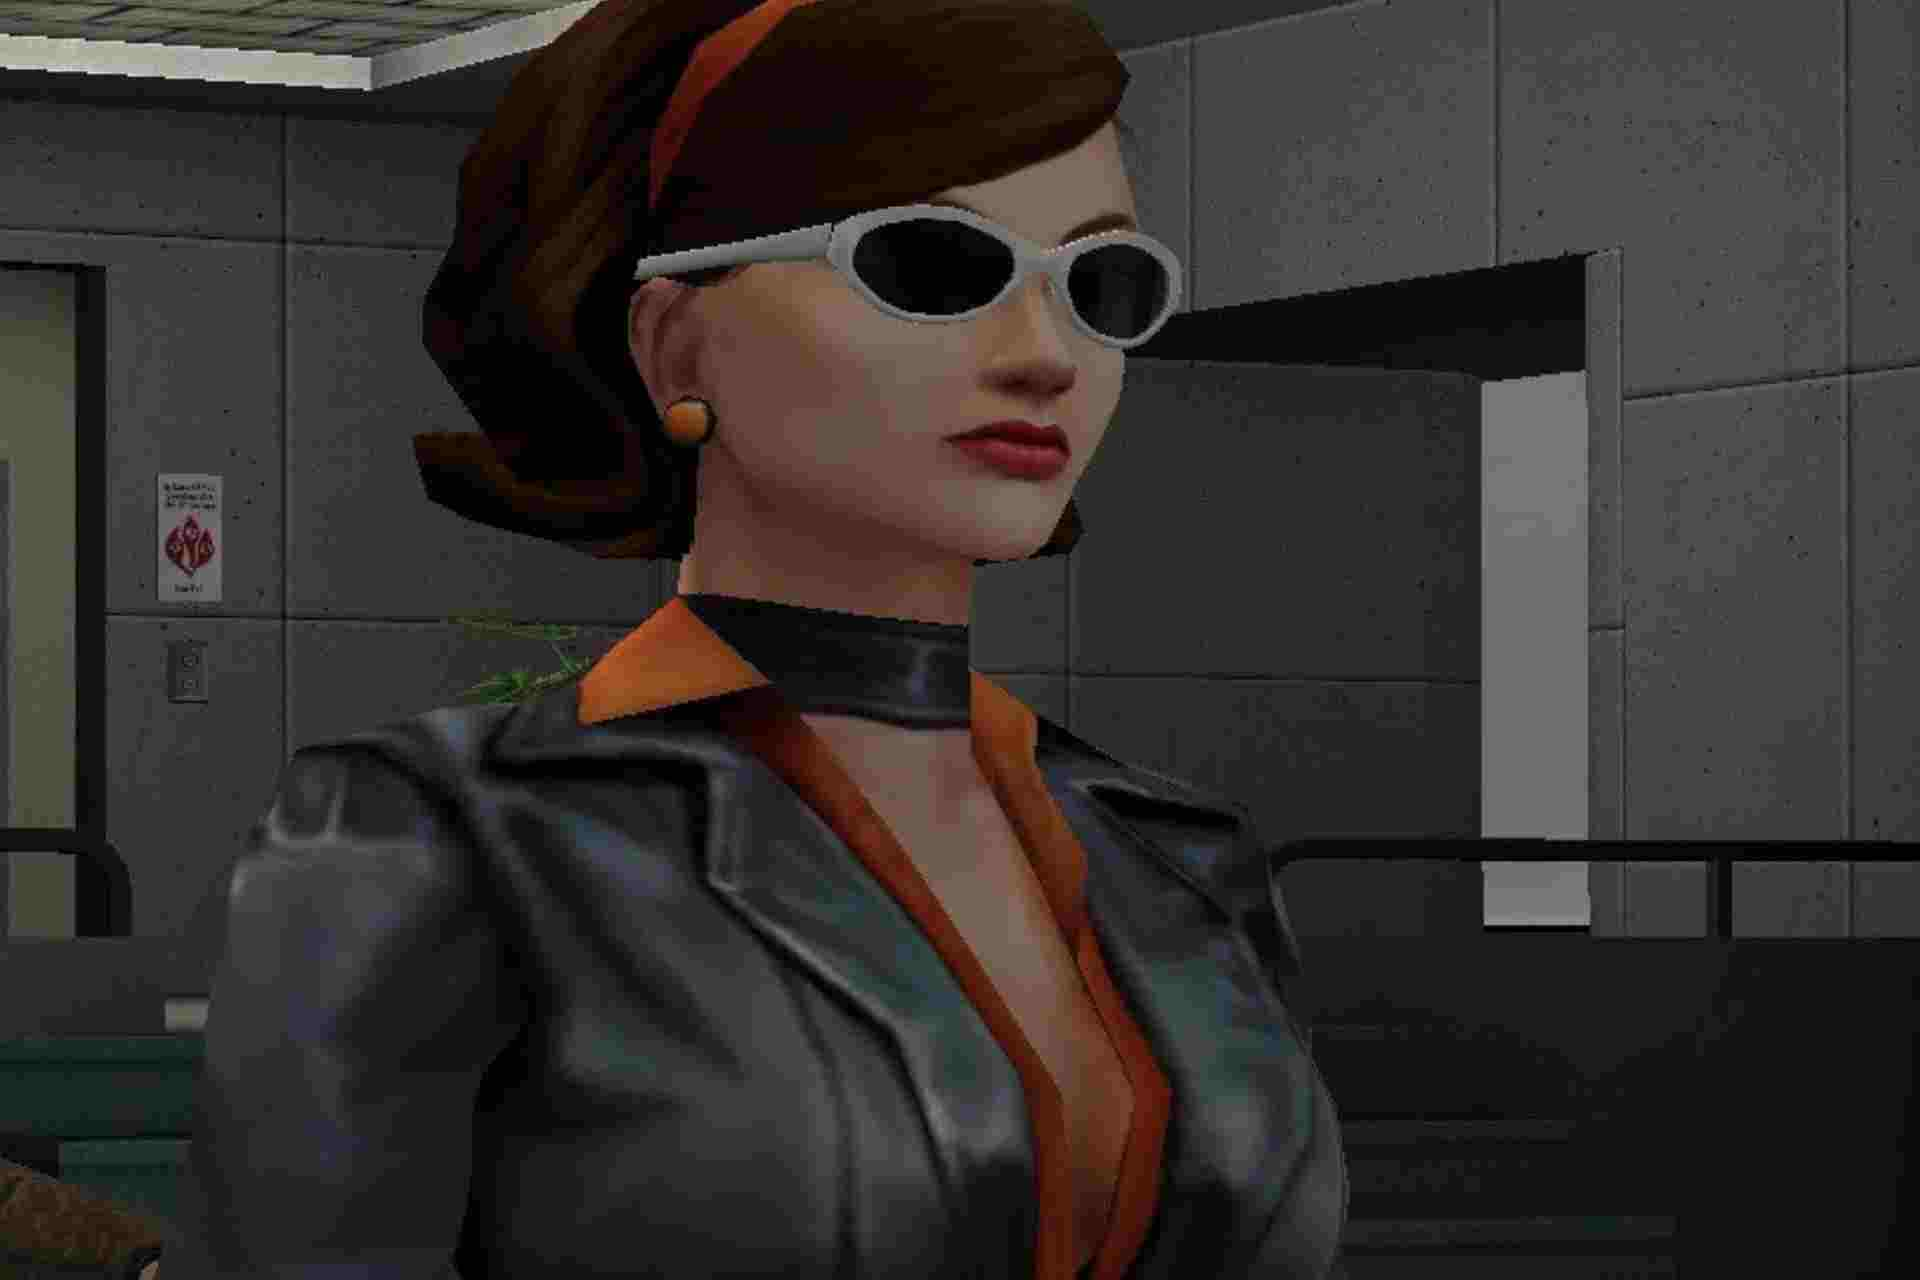 Spy Glasses are a gadget in No One Lives forever which is used as a camera, infra red laser detector and a mine detector.